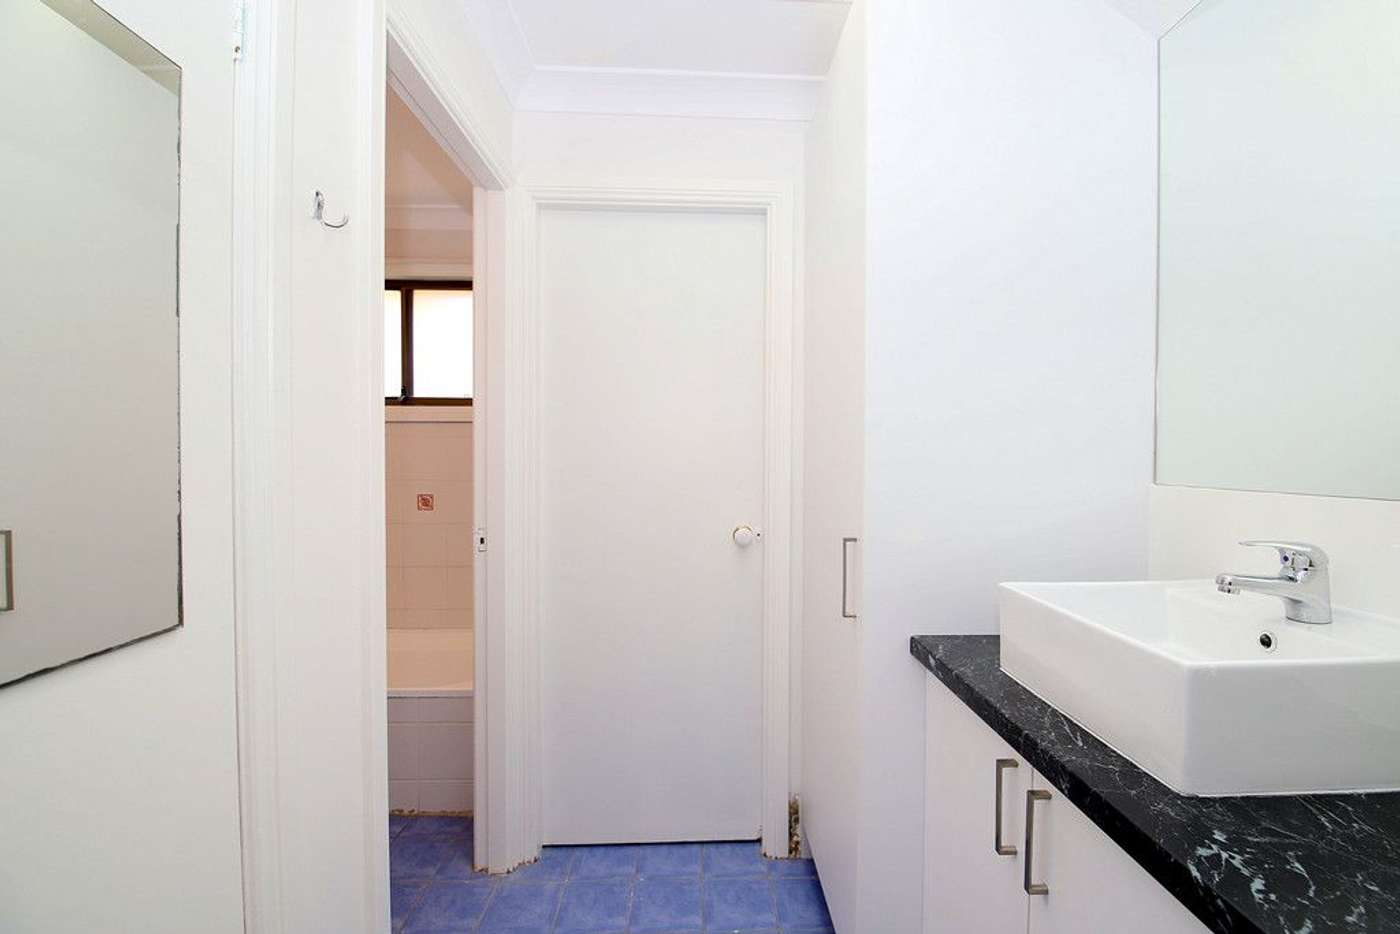 Sixth view of Homely villa listing, 5/41 Gleeson Avenue, Condell Park NSW 2200